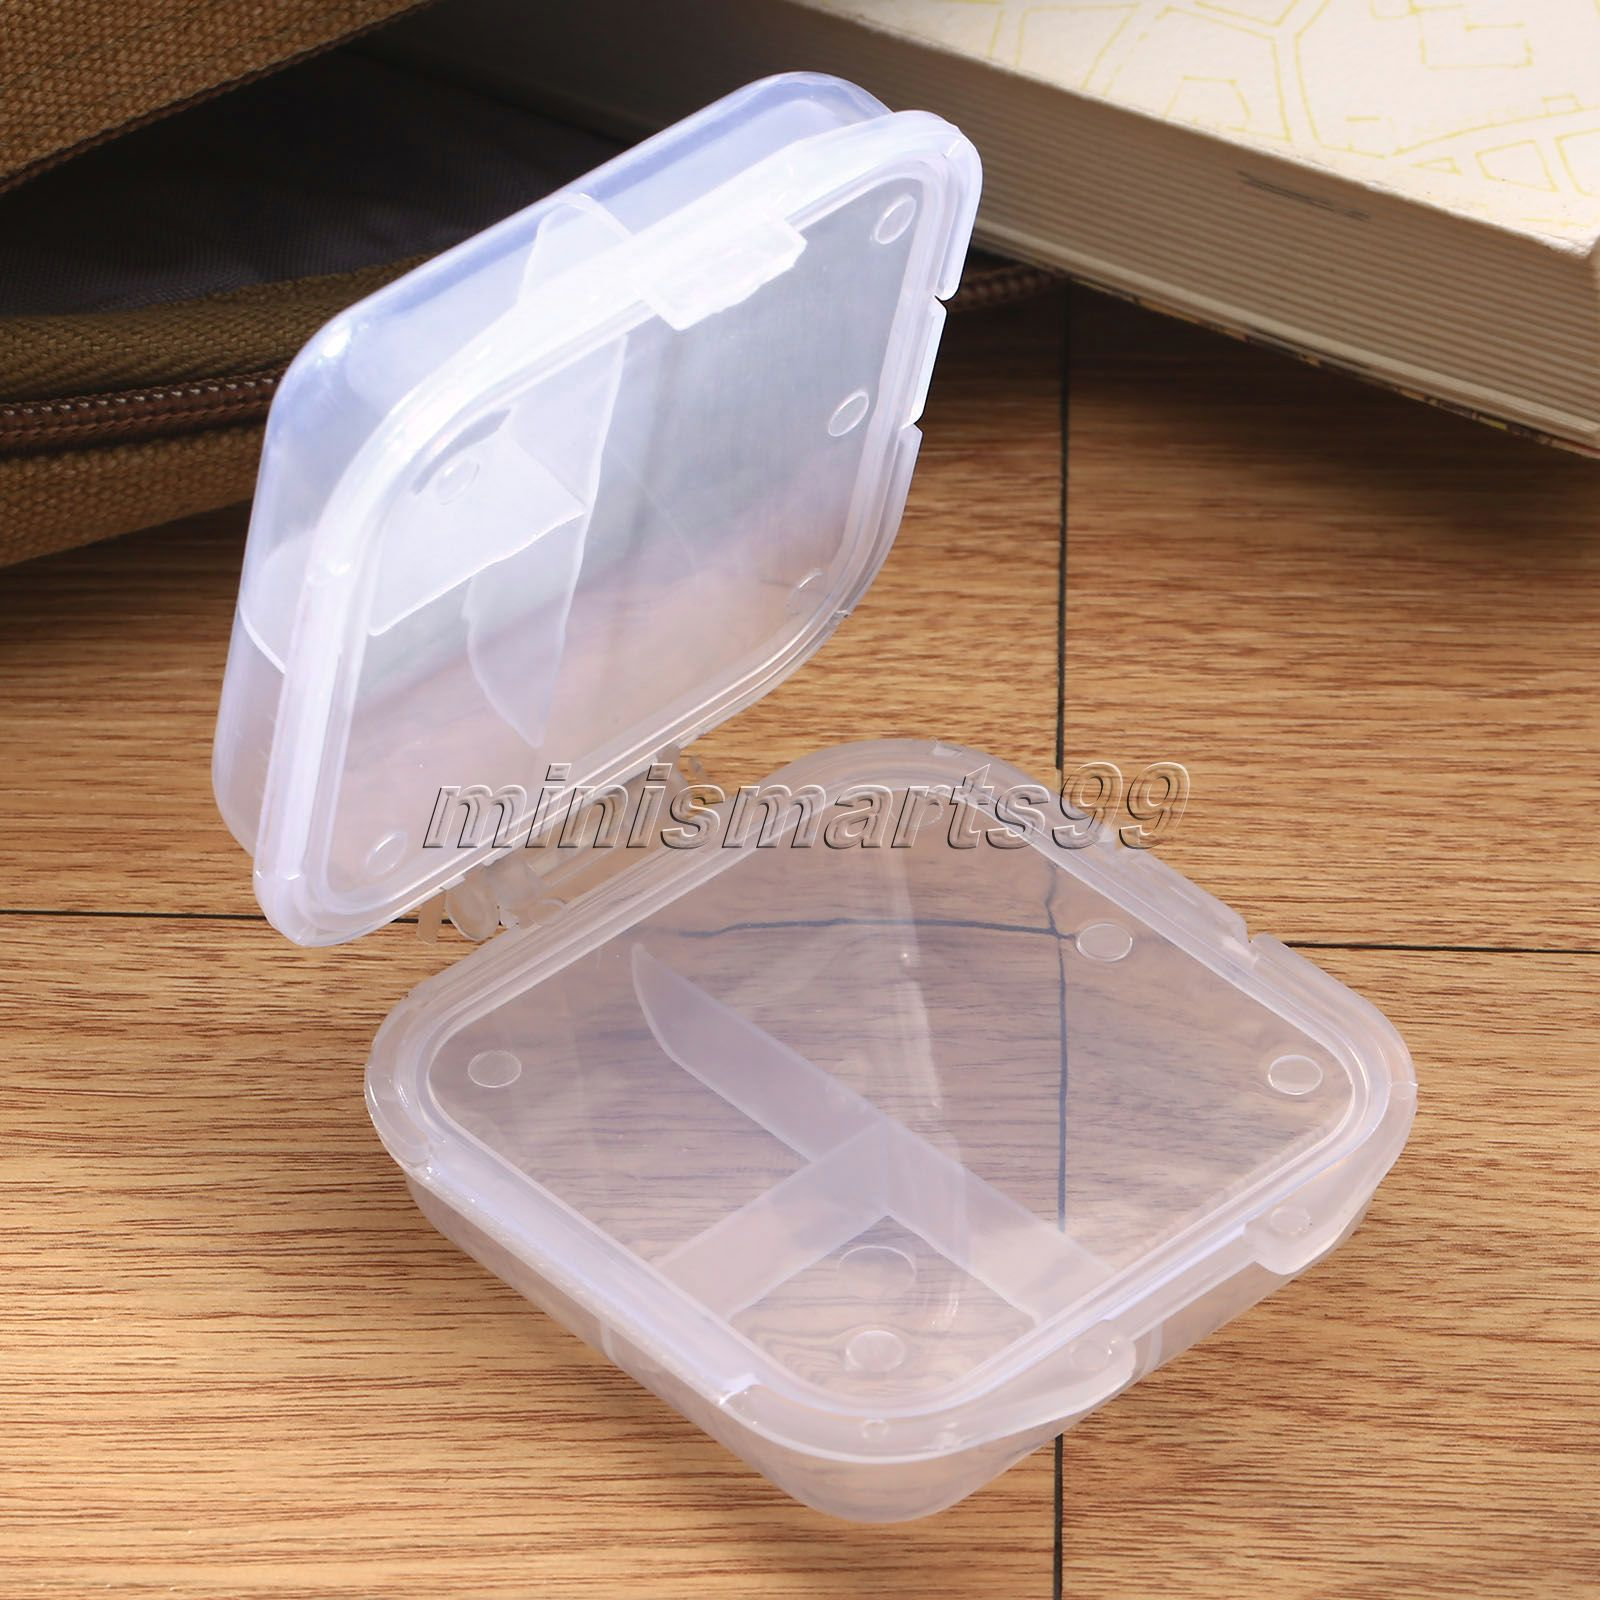 6 Slots 2 Layer Medicine Pill Drug Storage Box Folding Jewelry Candy Case Organizer Container Transparent Jewel Bead Case Cover